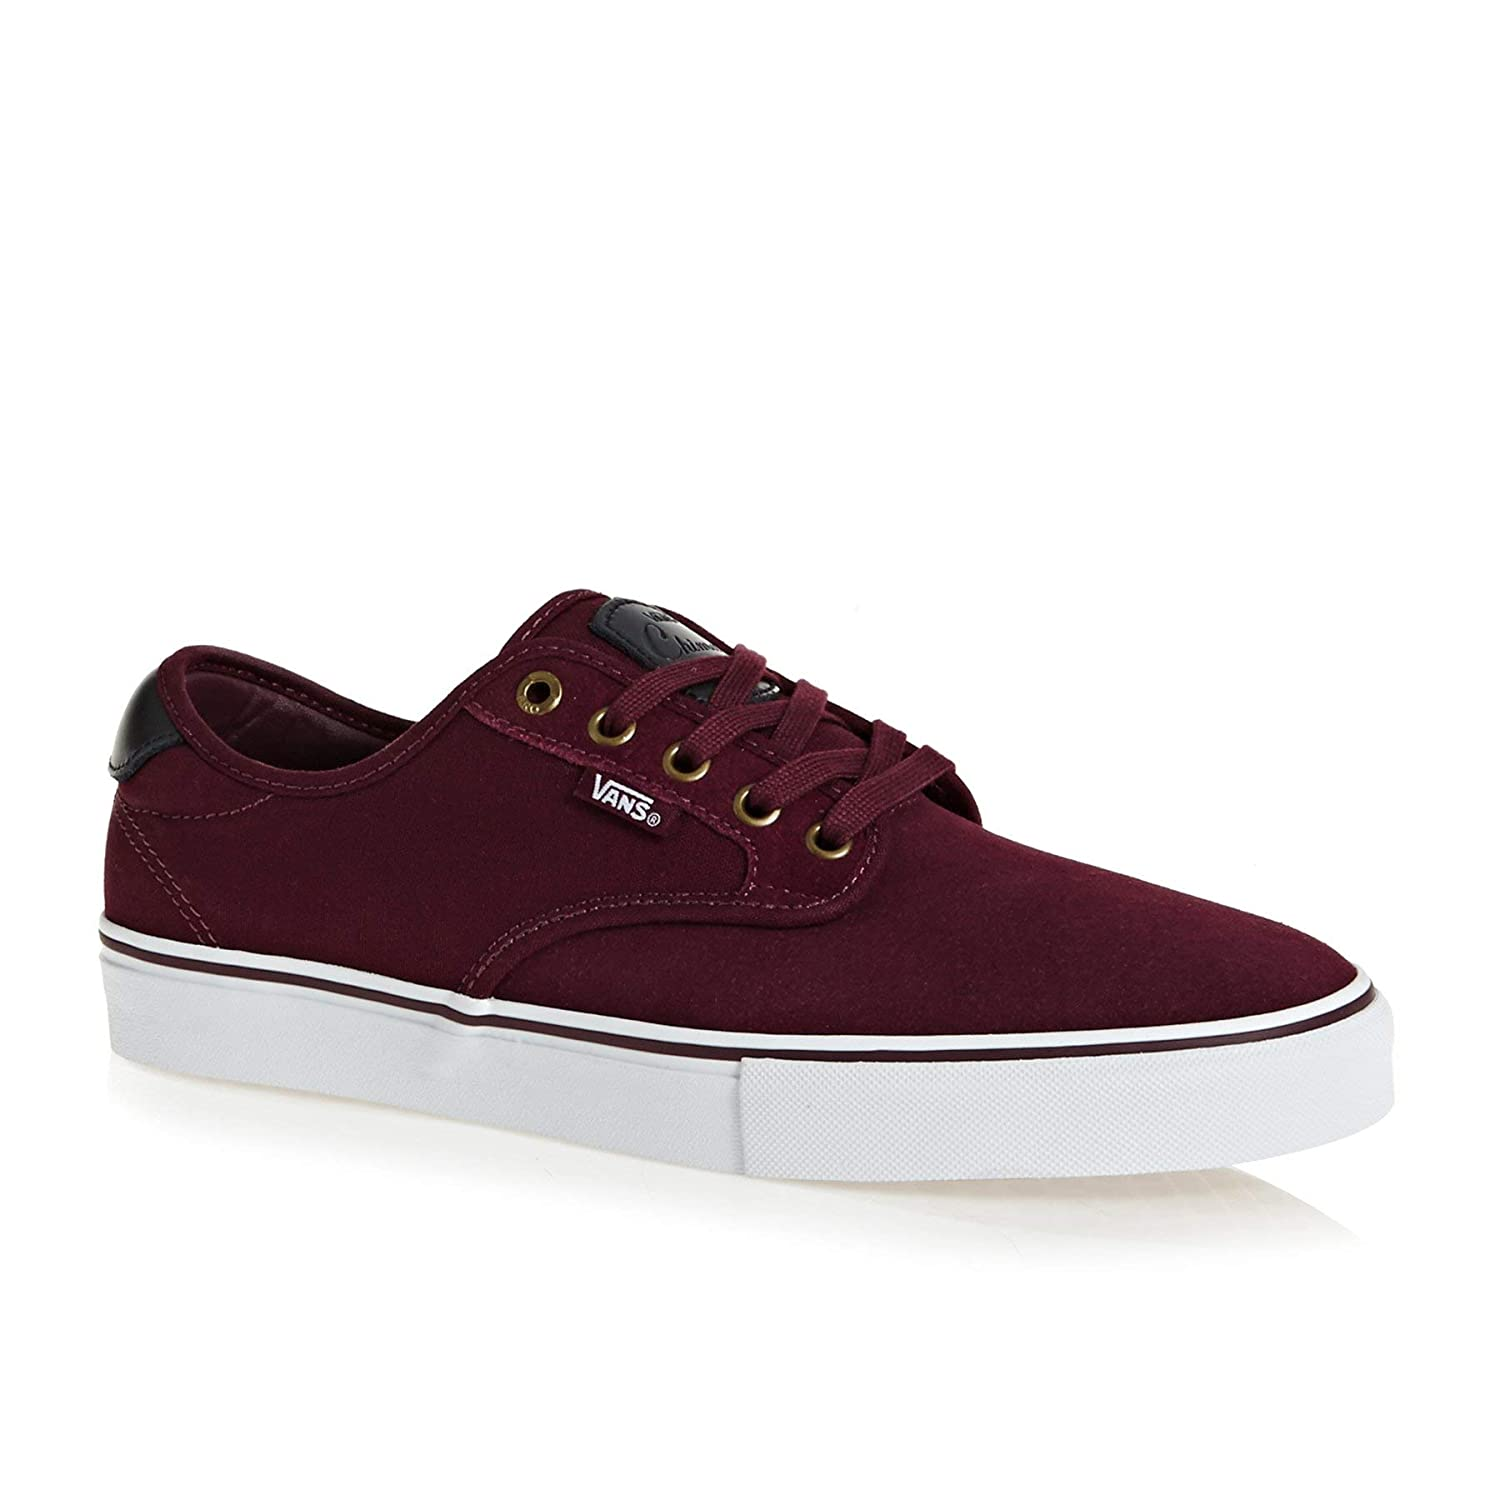 1f6c8cfd2fa9c9 Amazon.com  Vans Chima Ferguson Pro Shoes - Port  Shoes